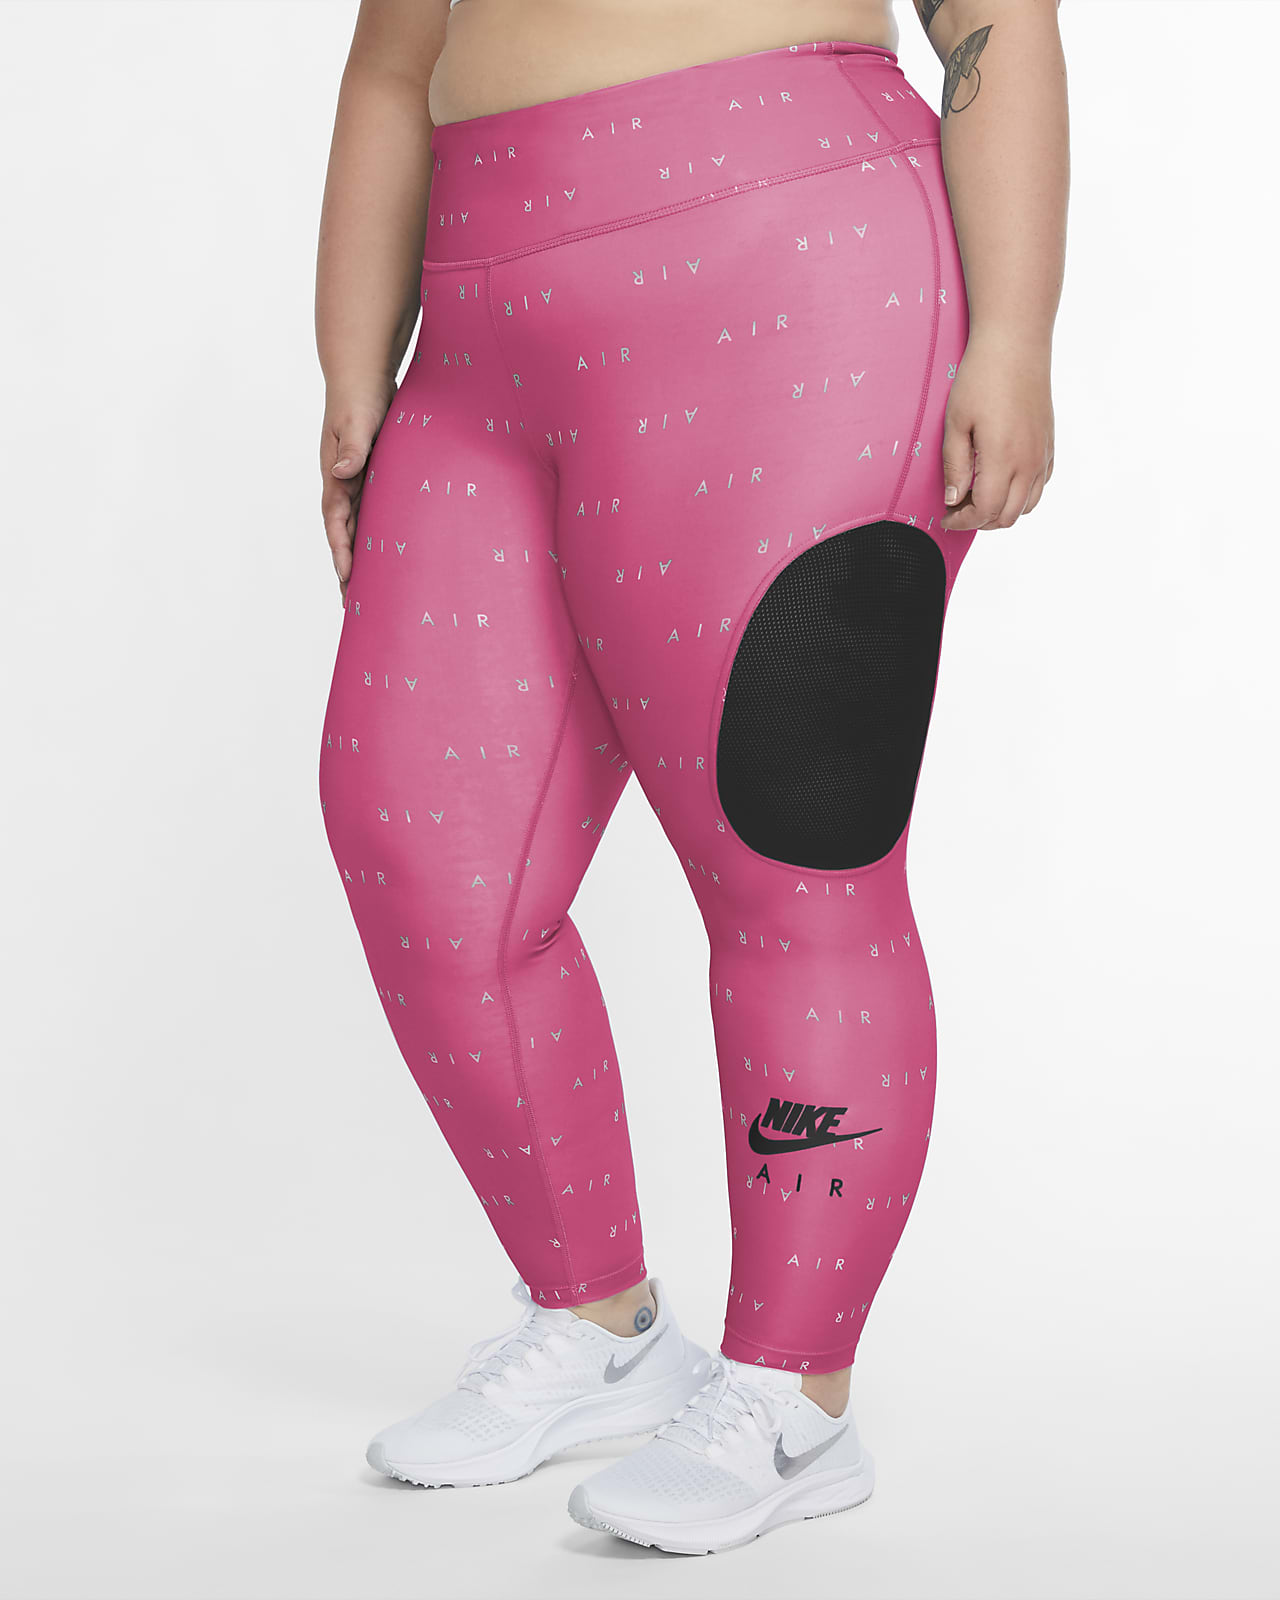 Nike Air Women's 7/8 Running Tights (Plus Size)